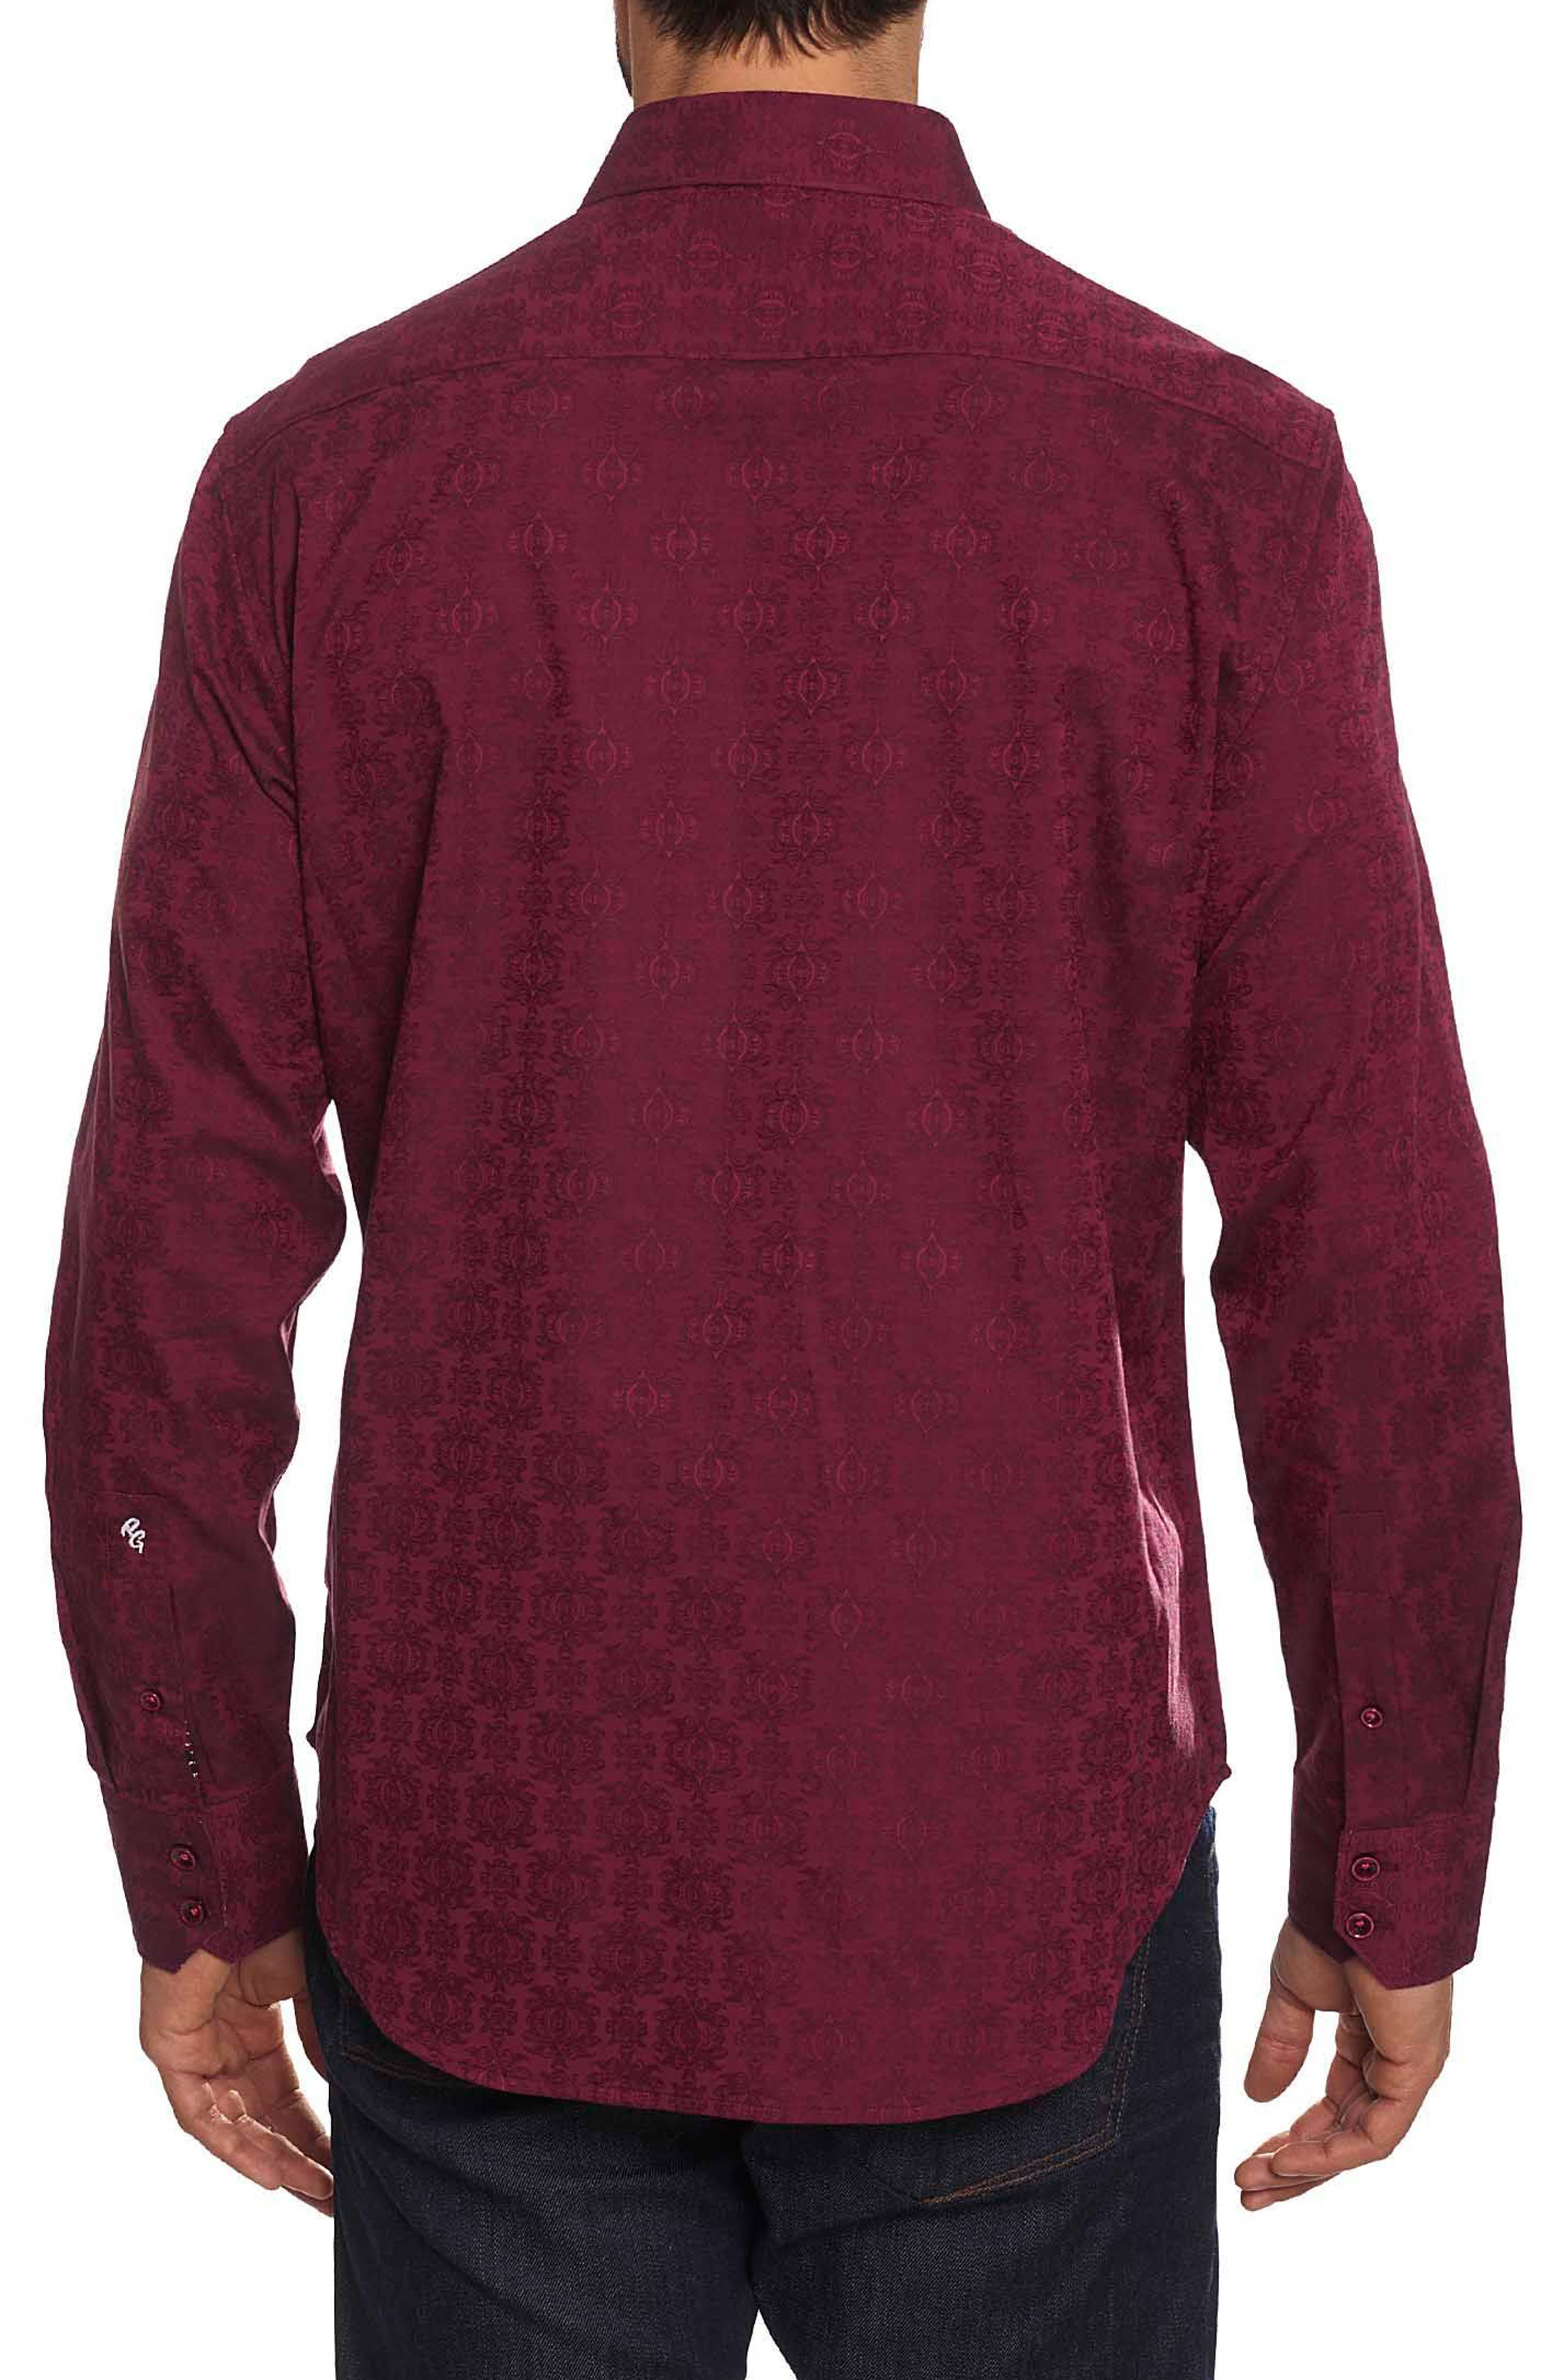 Cullen Classic Fit Jacquard Sport Shirt,                             Alternate thumbnail 3, color,